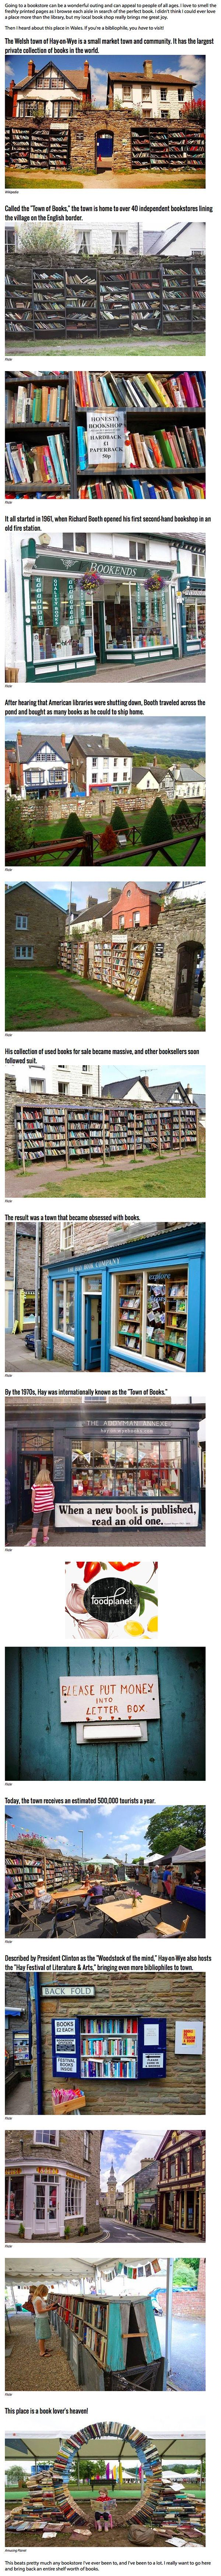 """""""Town of Books"""" - Hay-on-Wye I must go there"""